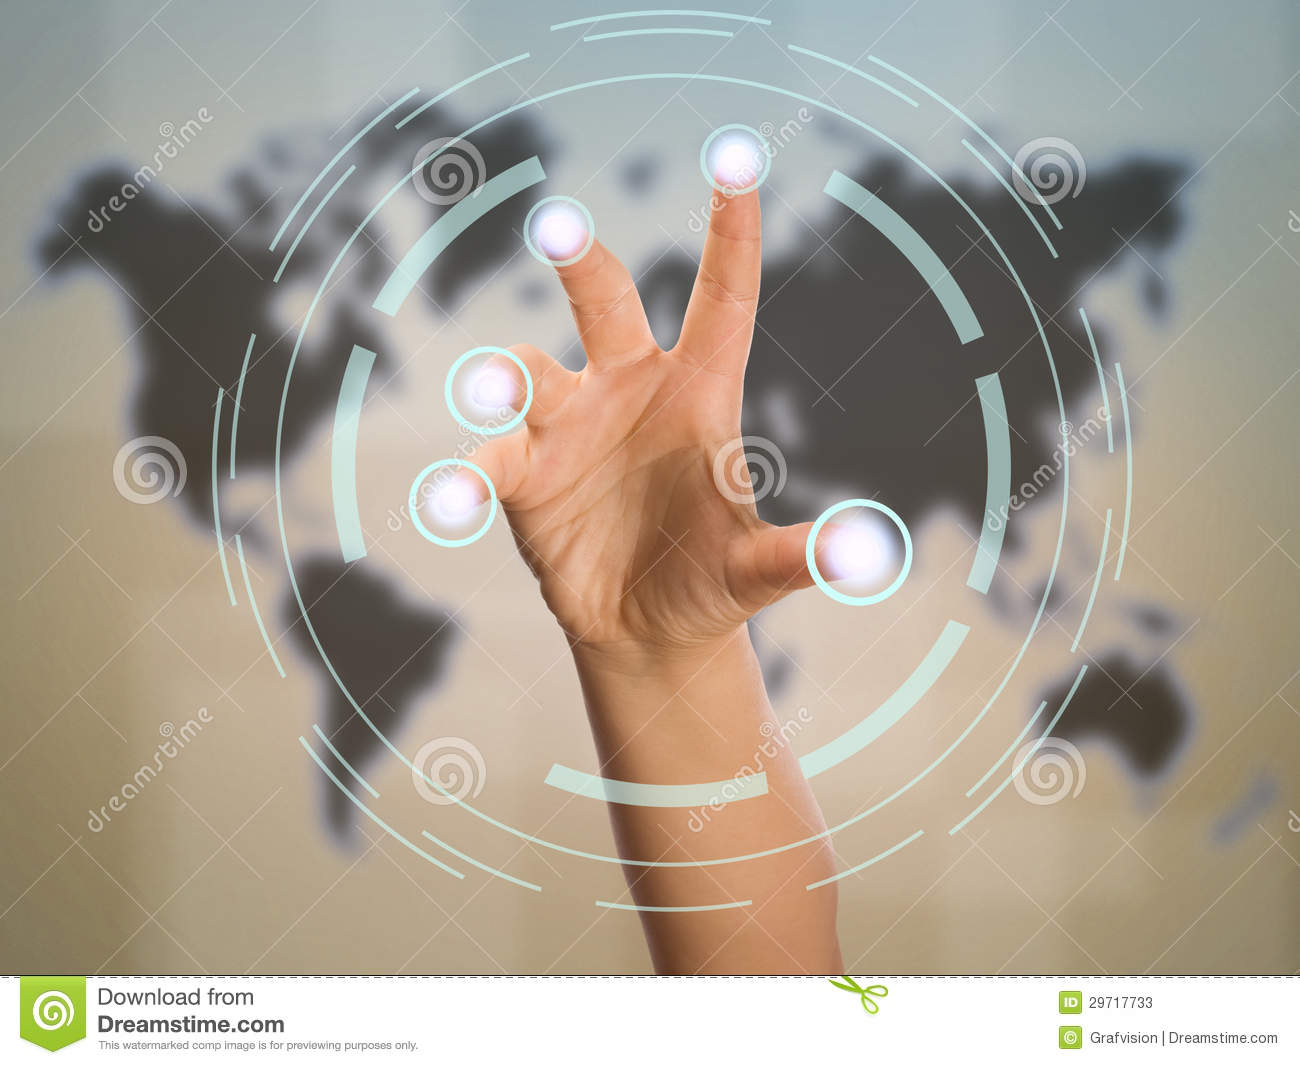 Scanning Finger Touch Screen Interface on Authentication And Authorization